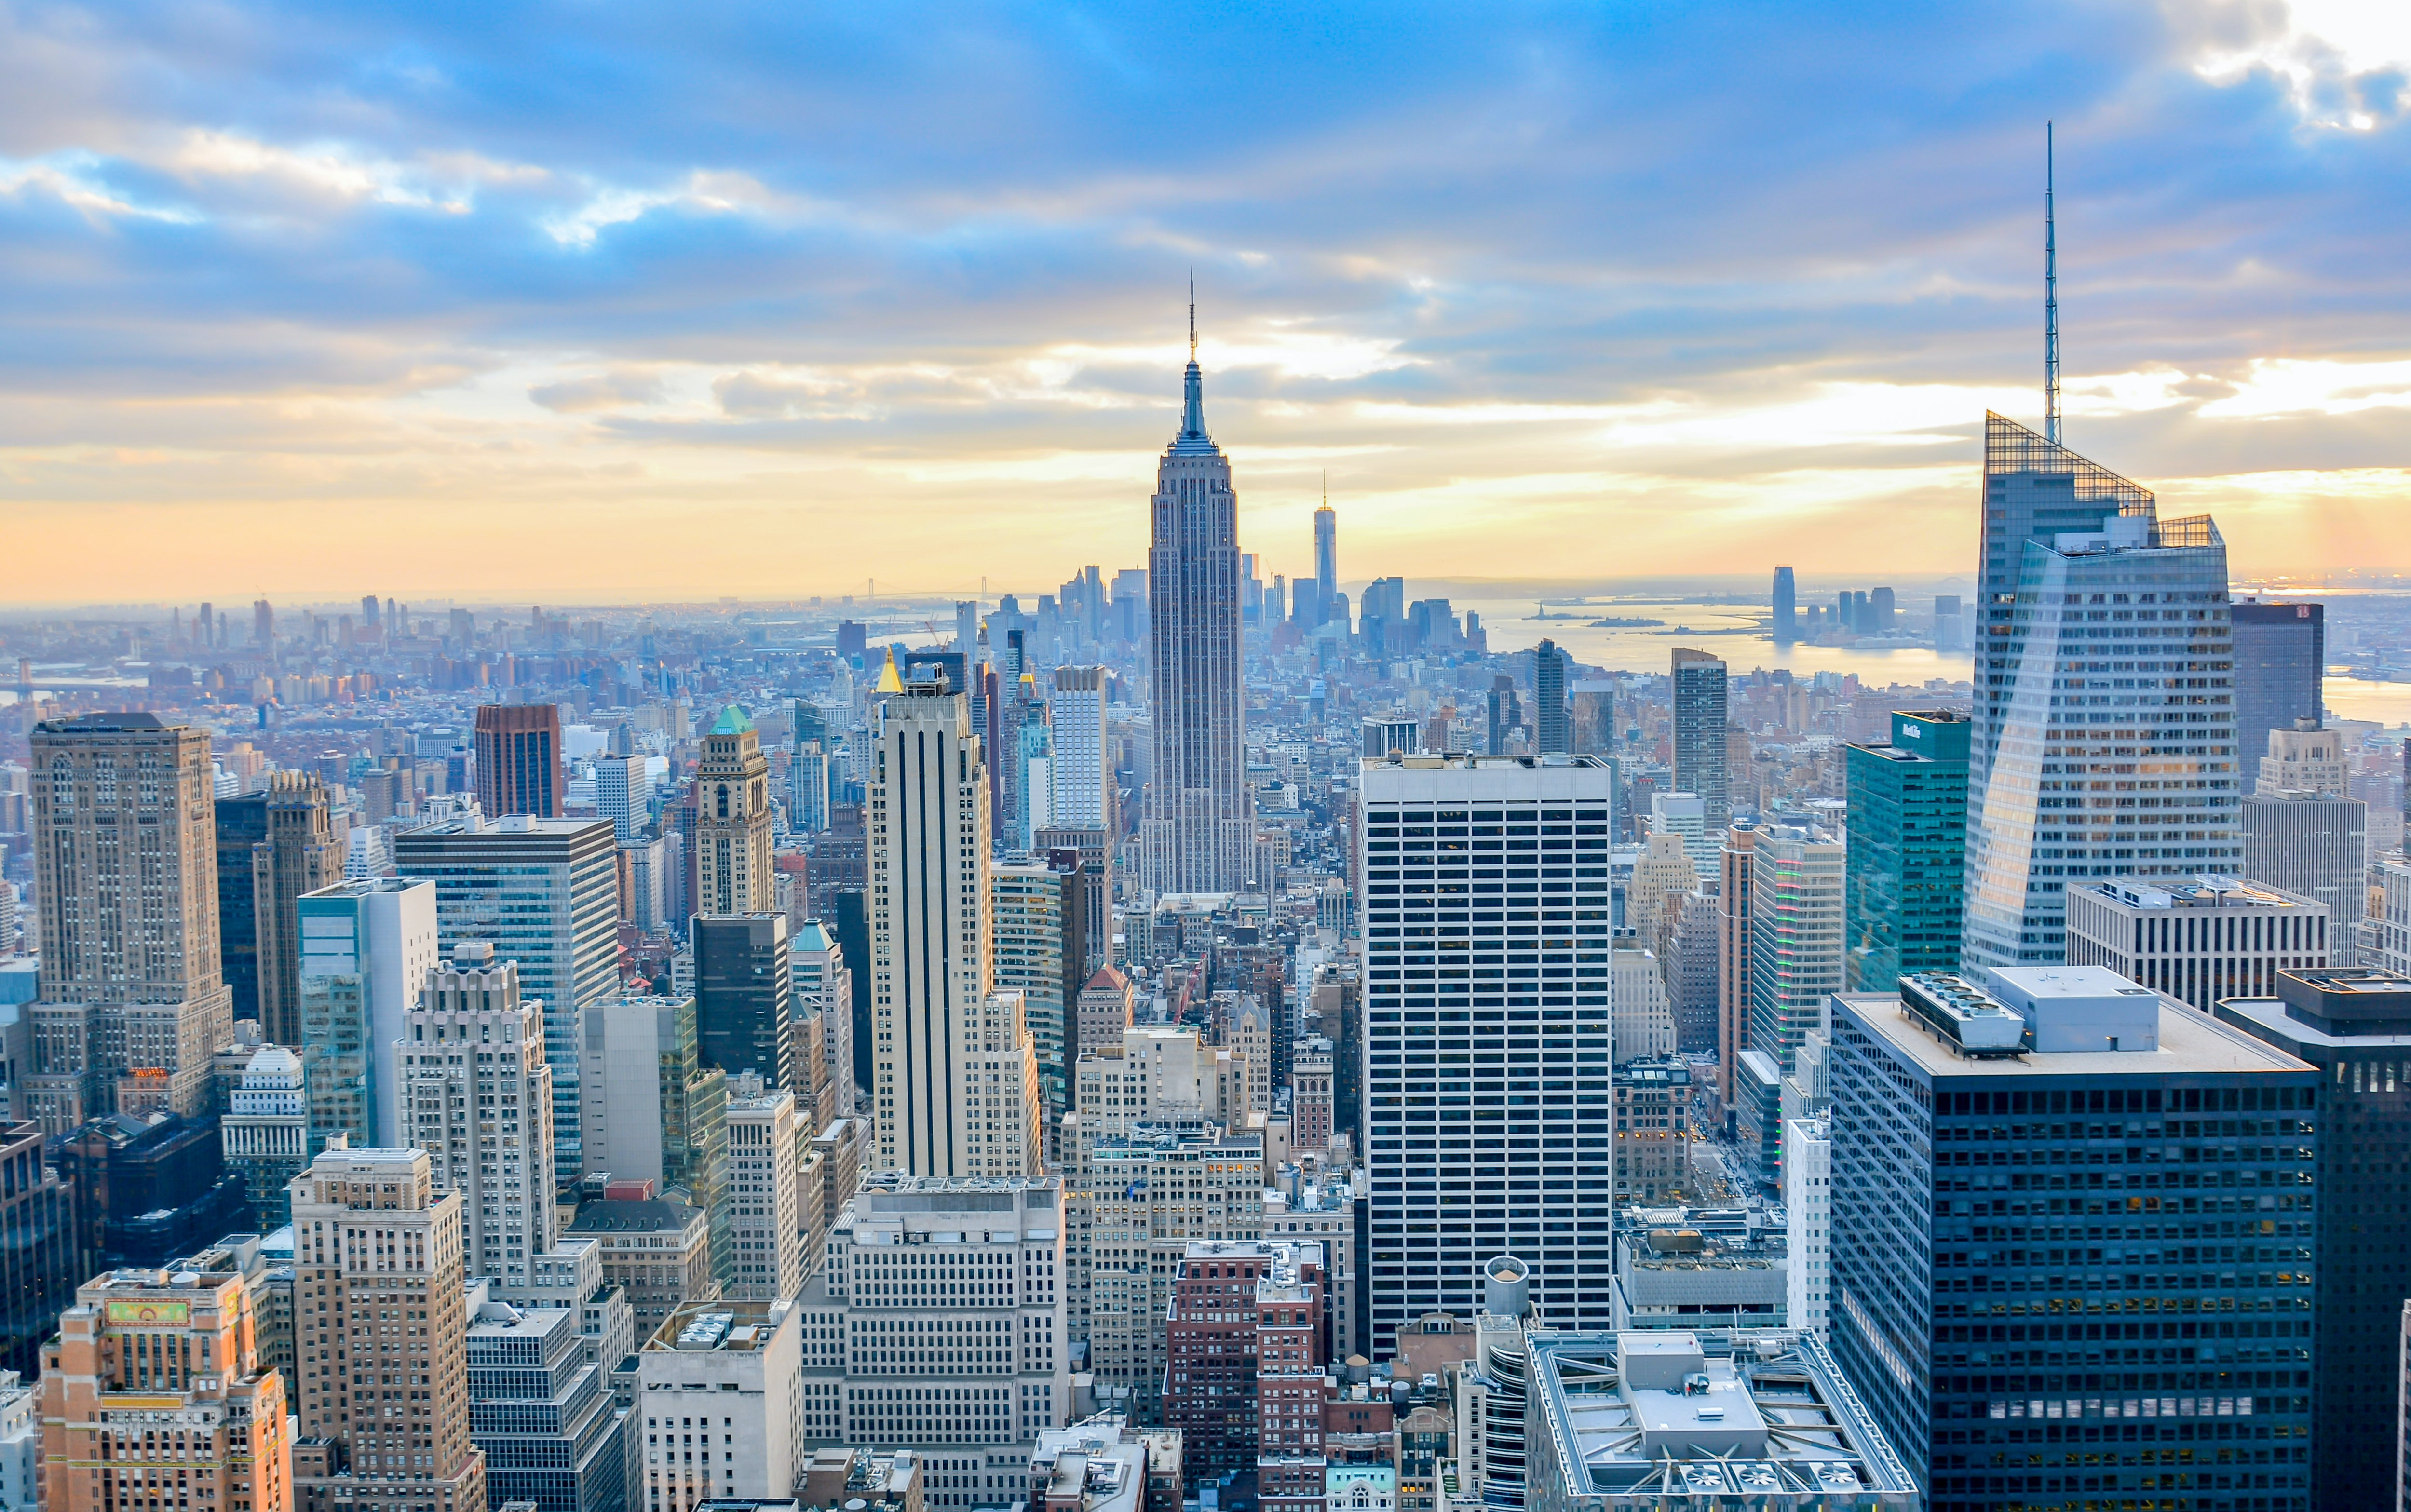 New York skyline | Source: Shutterstock